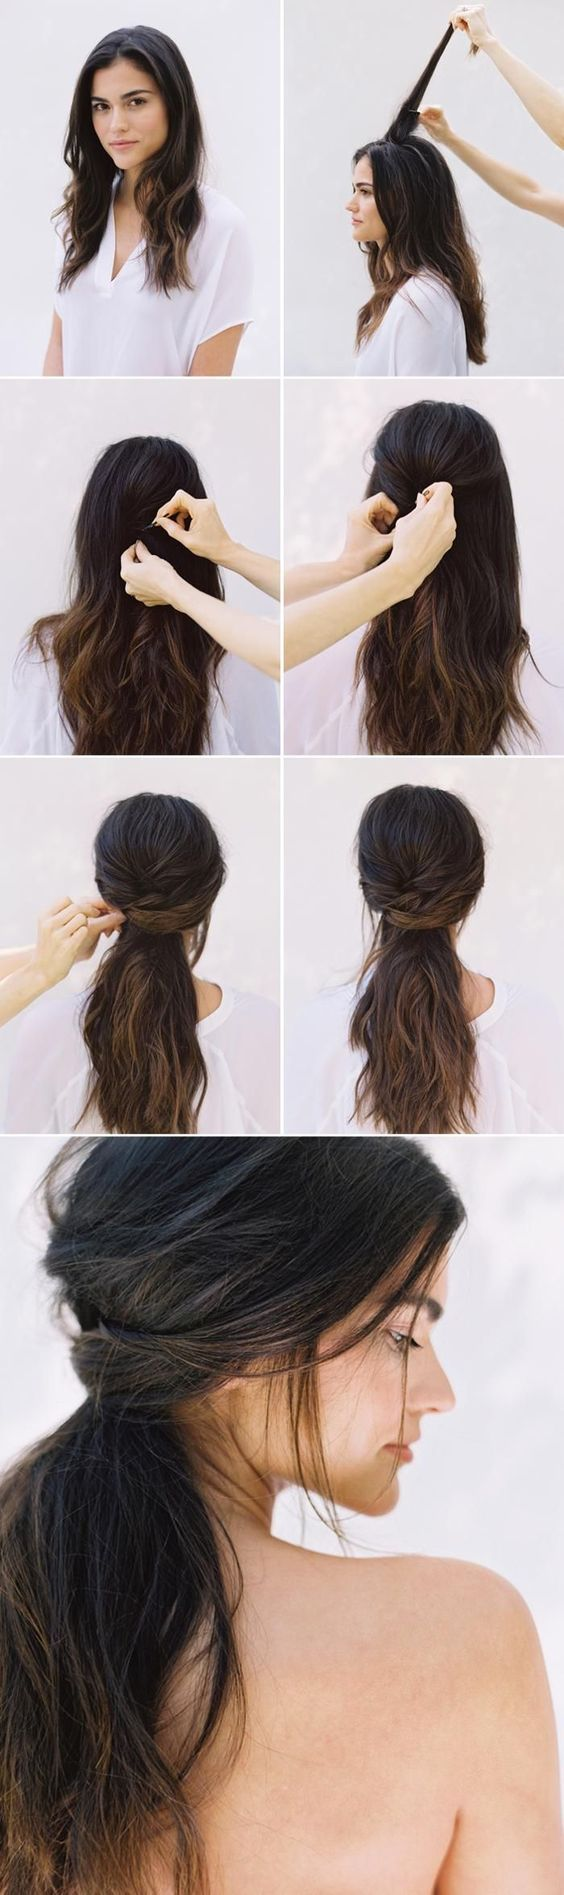 17 girlish original hairdos with pigtails is a lead, and you can make it with ease